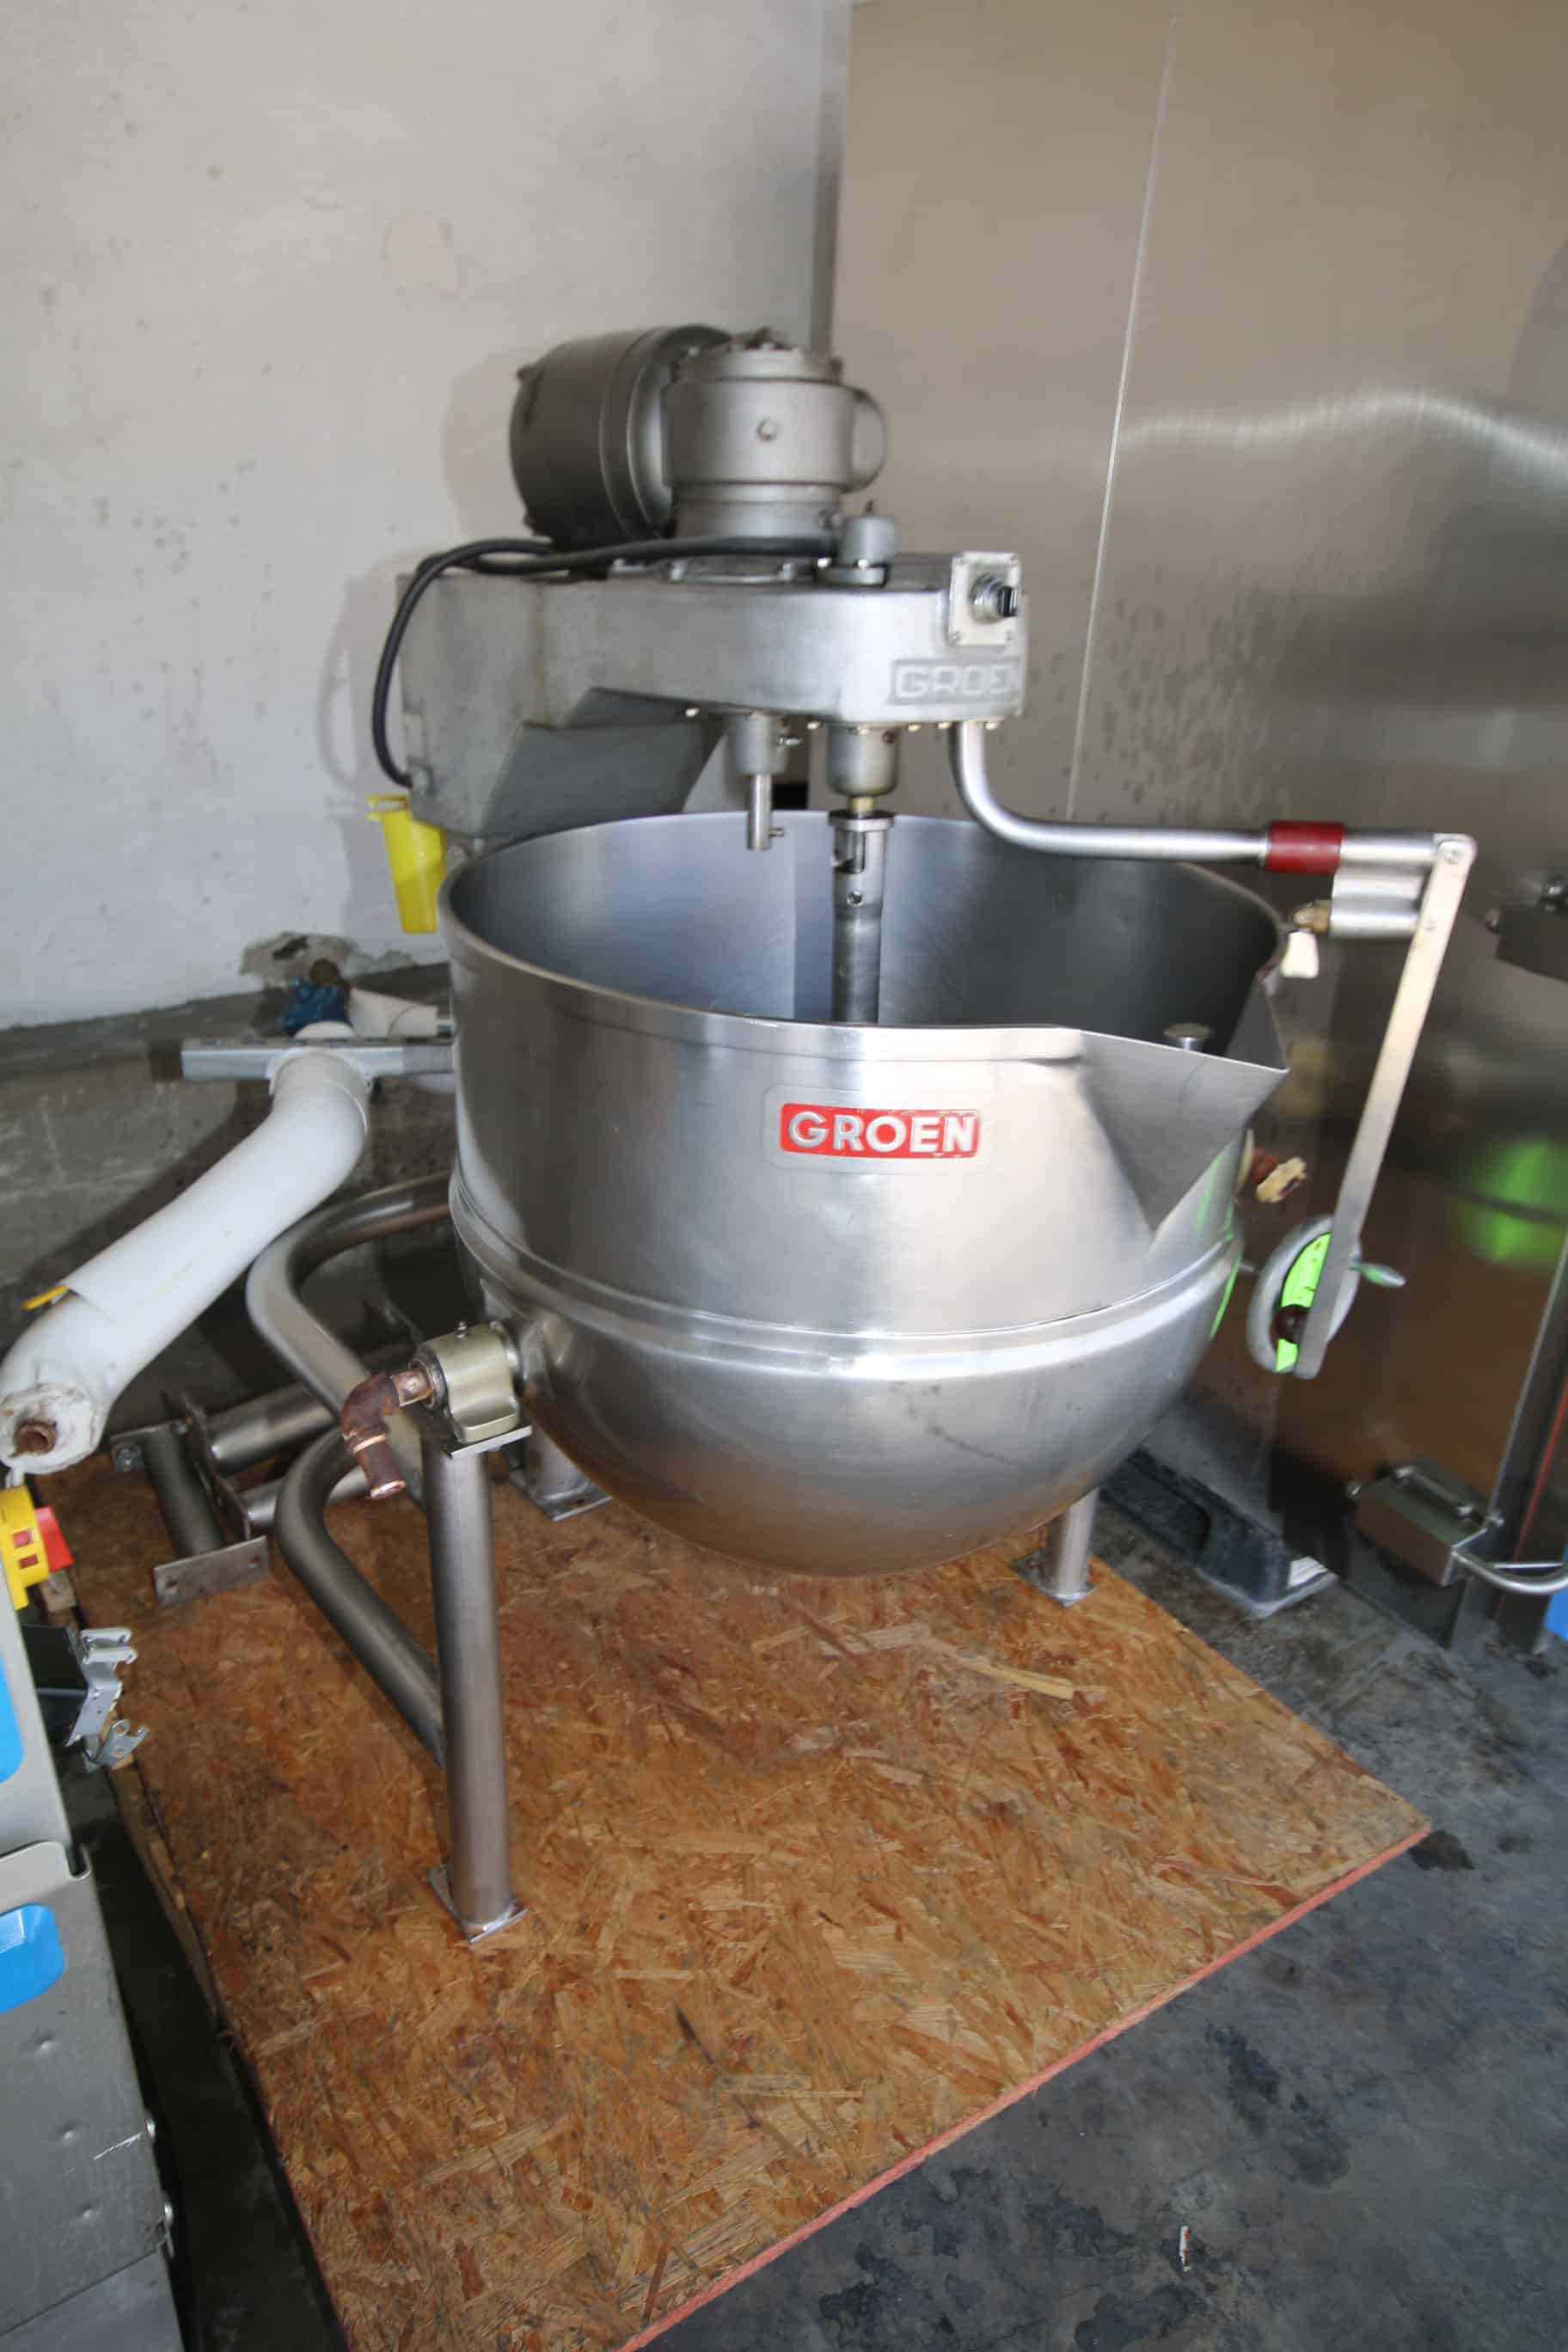 Groen 60 Gal. S/S Kettle, M/N DTA-3-60, Max. W.P. 45 PSI @ 300 F, Nat'L BD:  40091, with Tilt and 2/1 hp Top Mounted